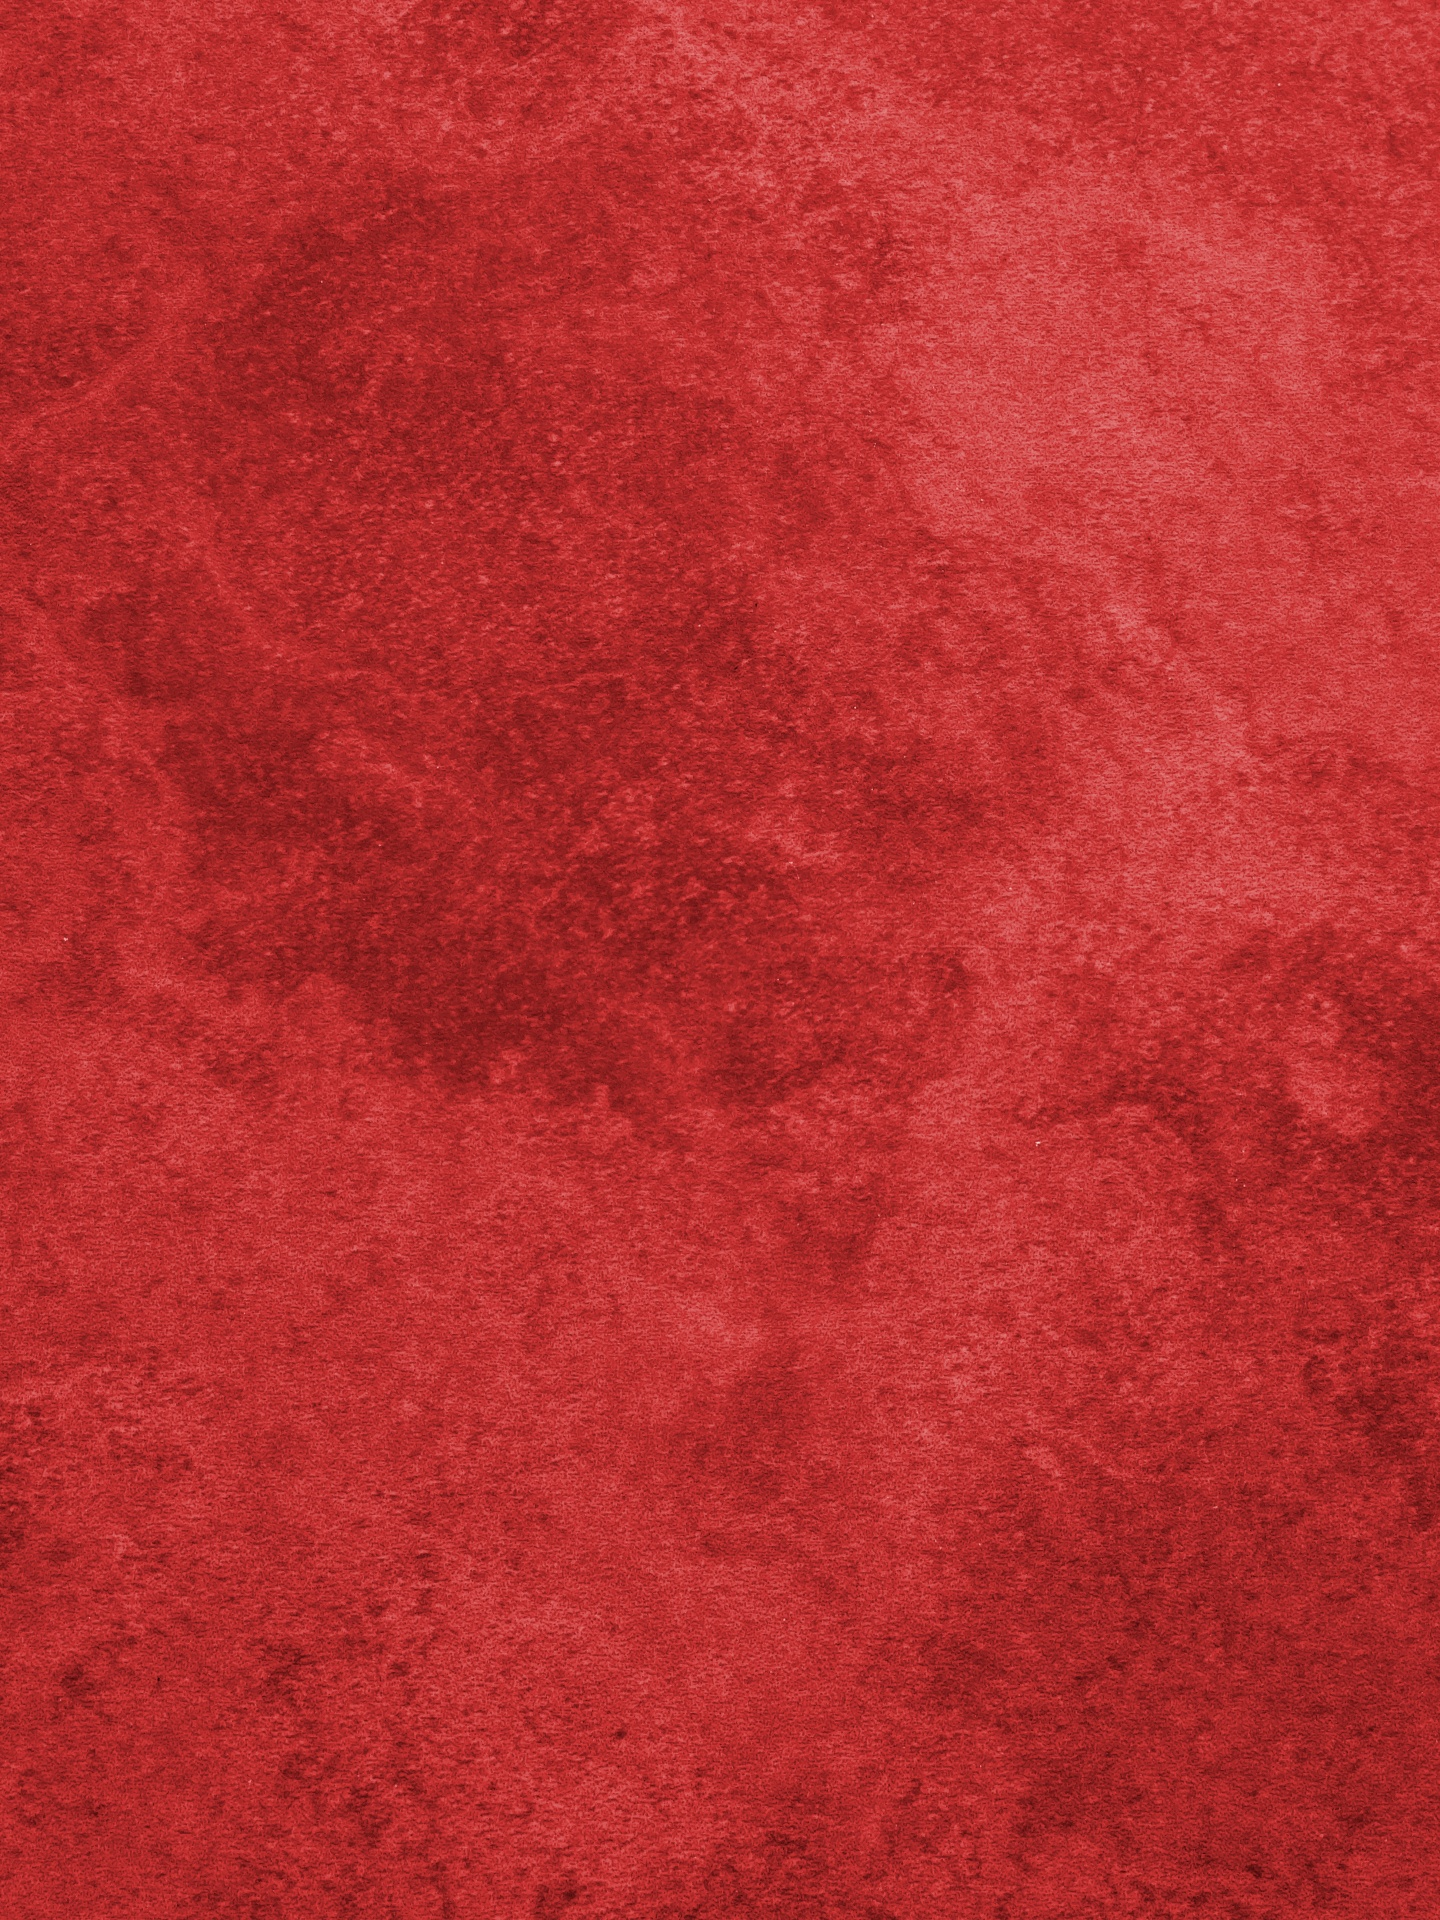 Free Backrounds red,pink,backgrounds,pattern,patterns - free image from